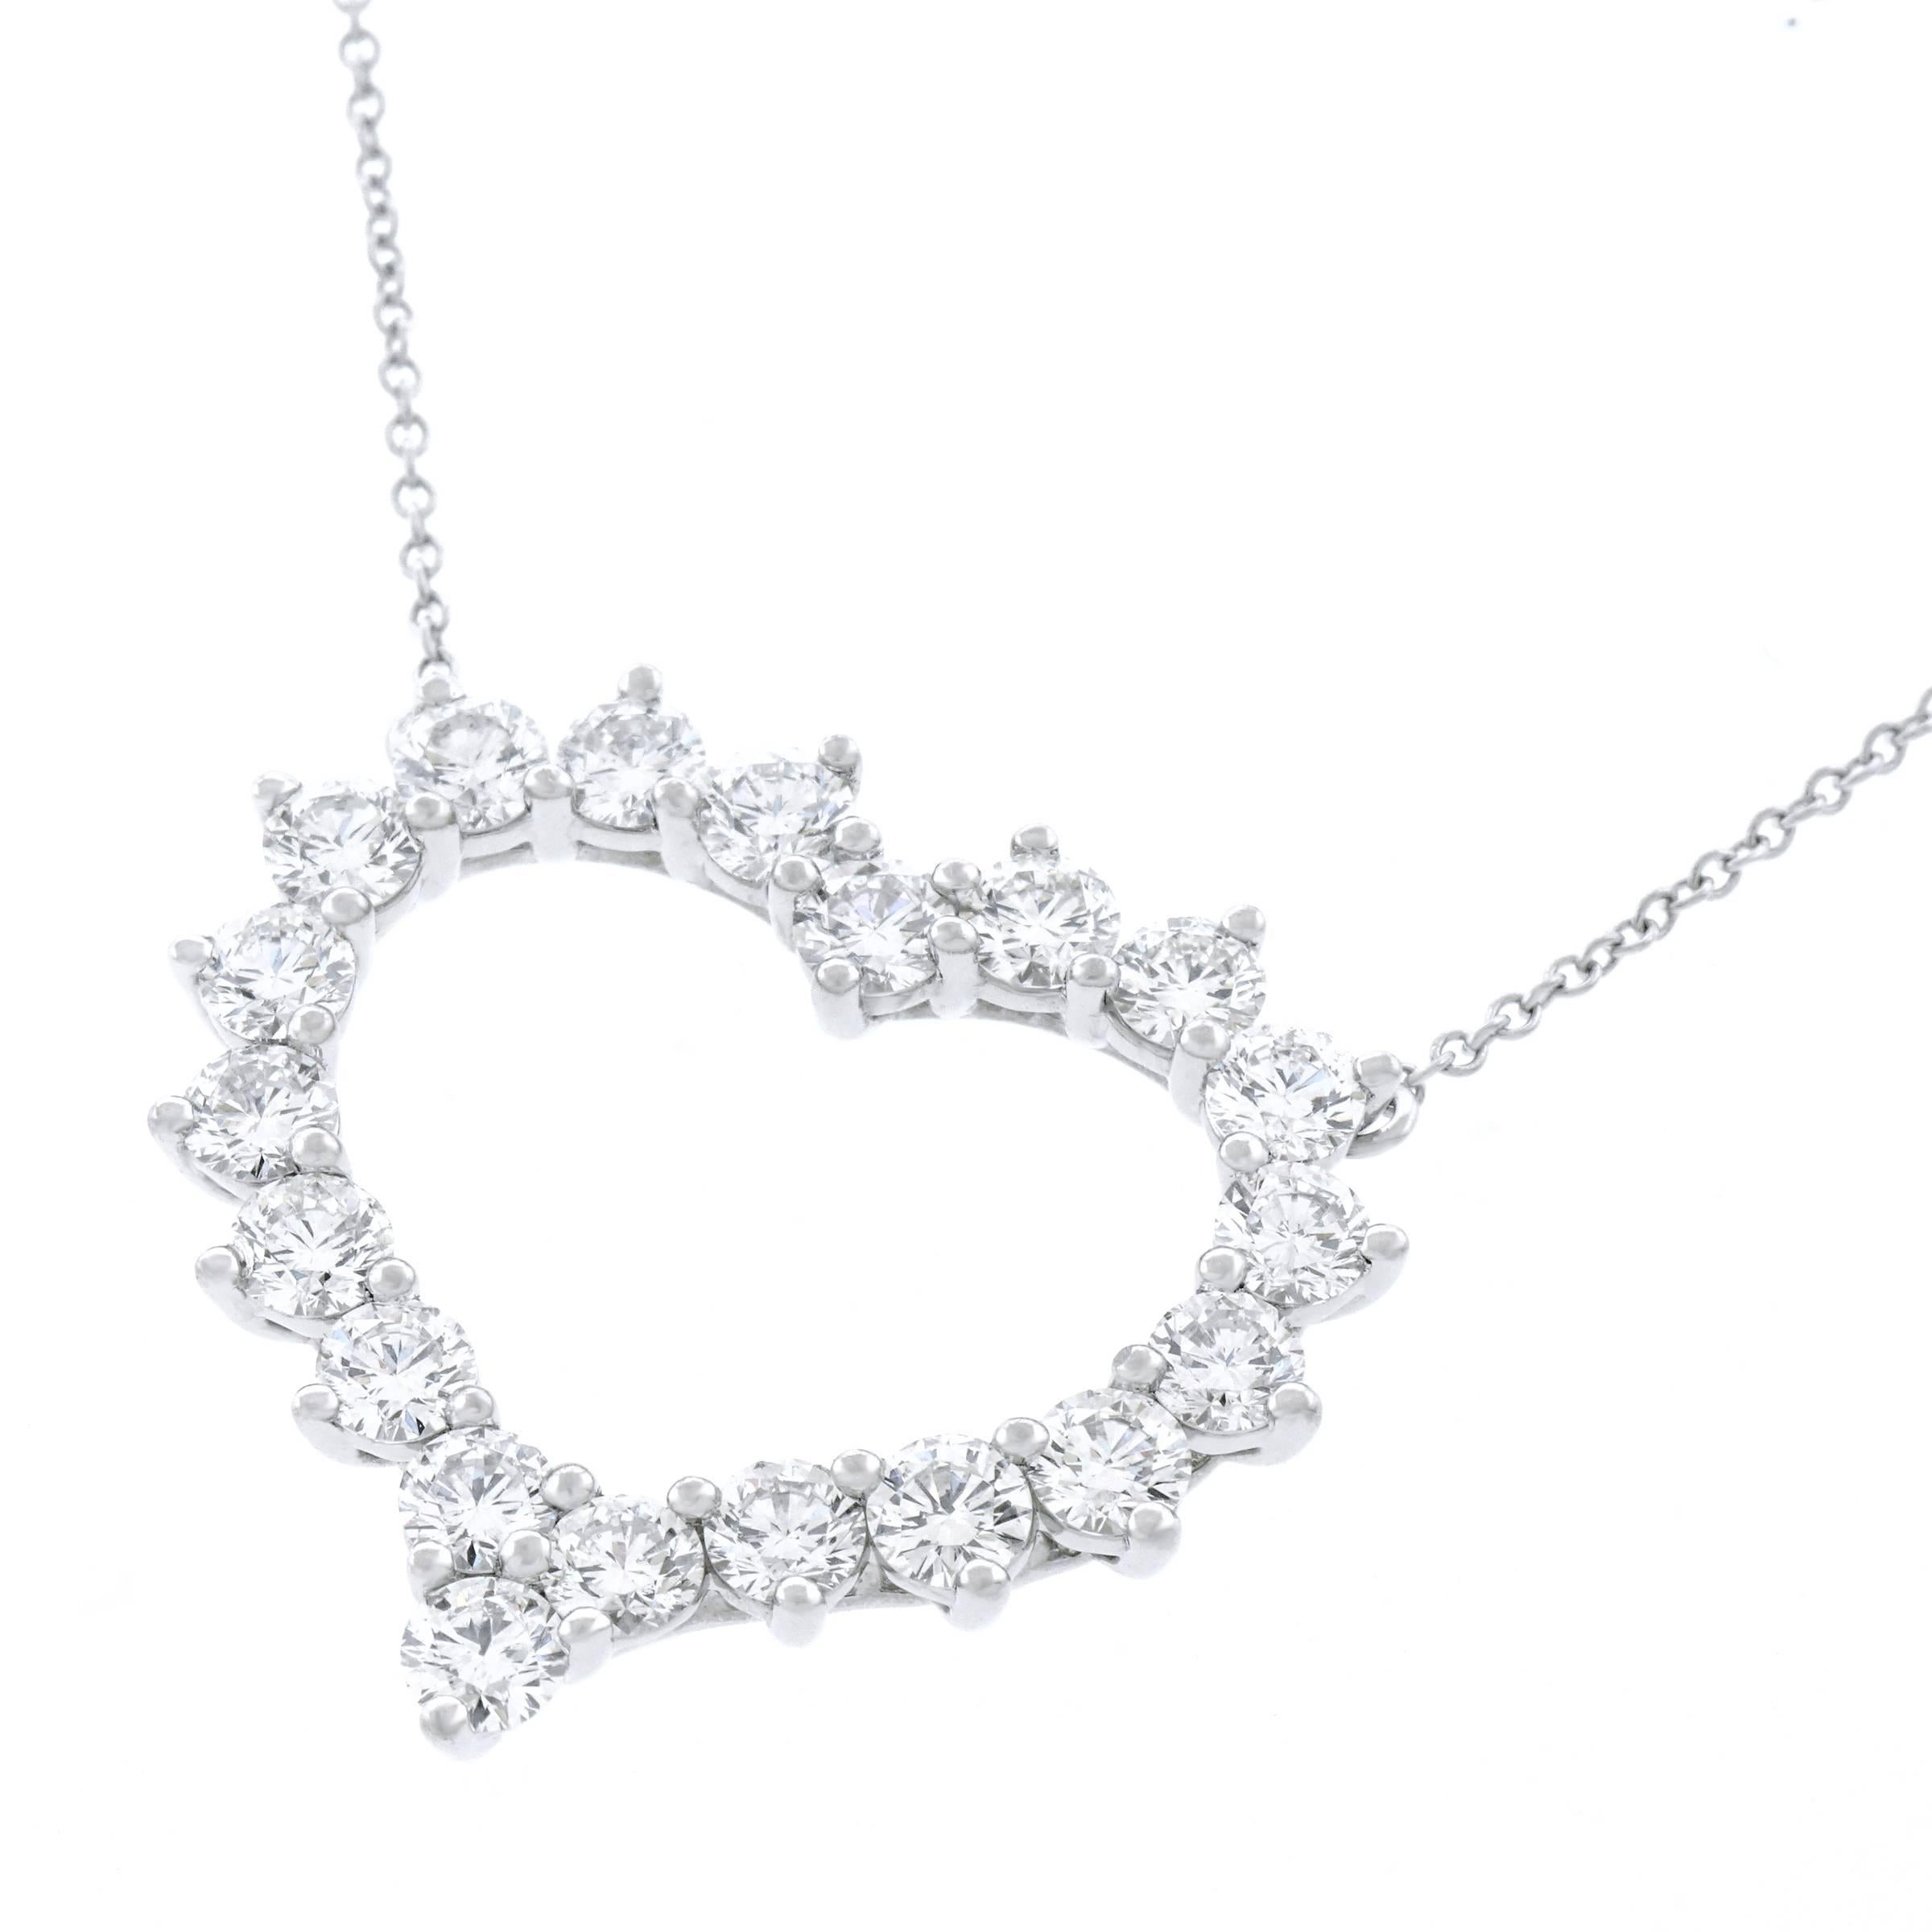 deco art necklace platinum pendant filigree diamond